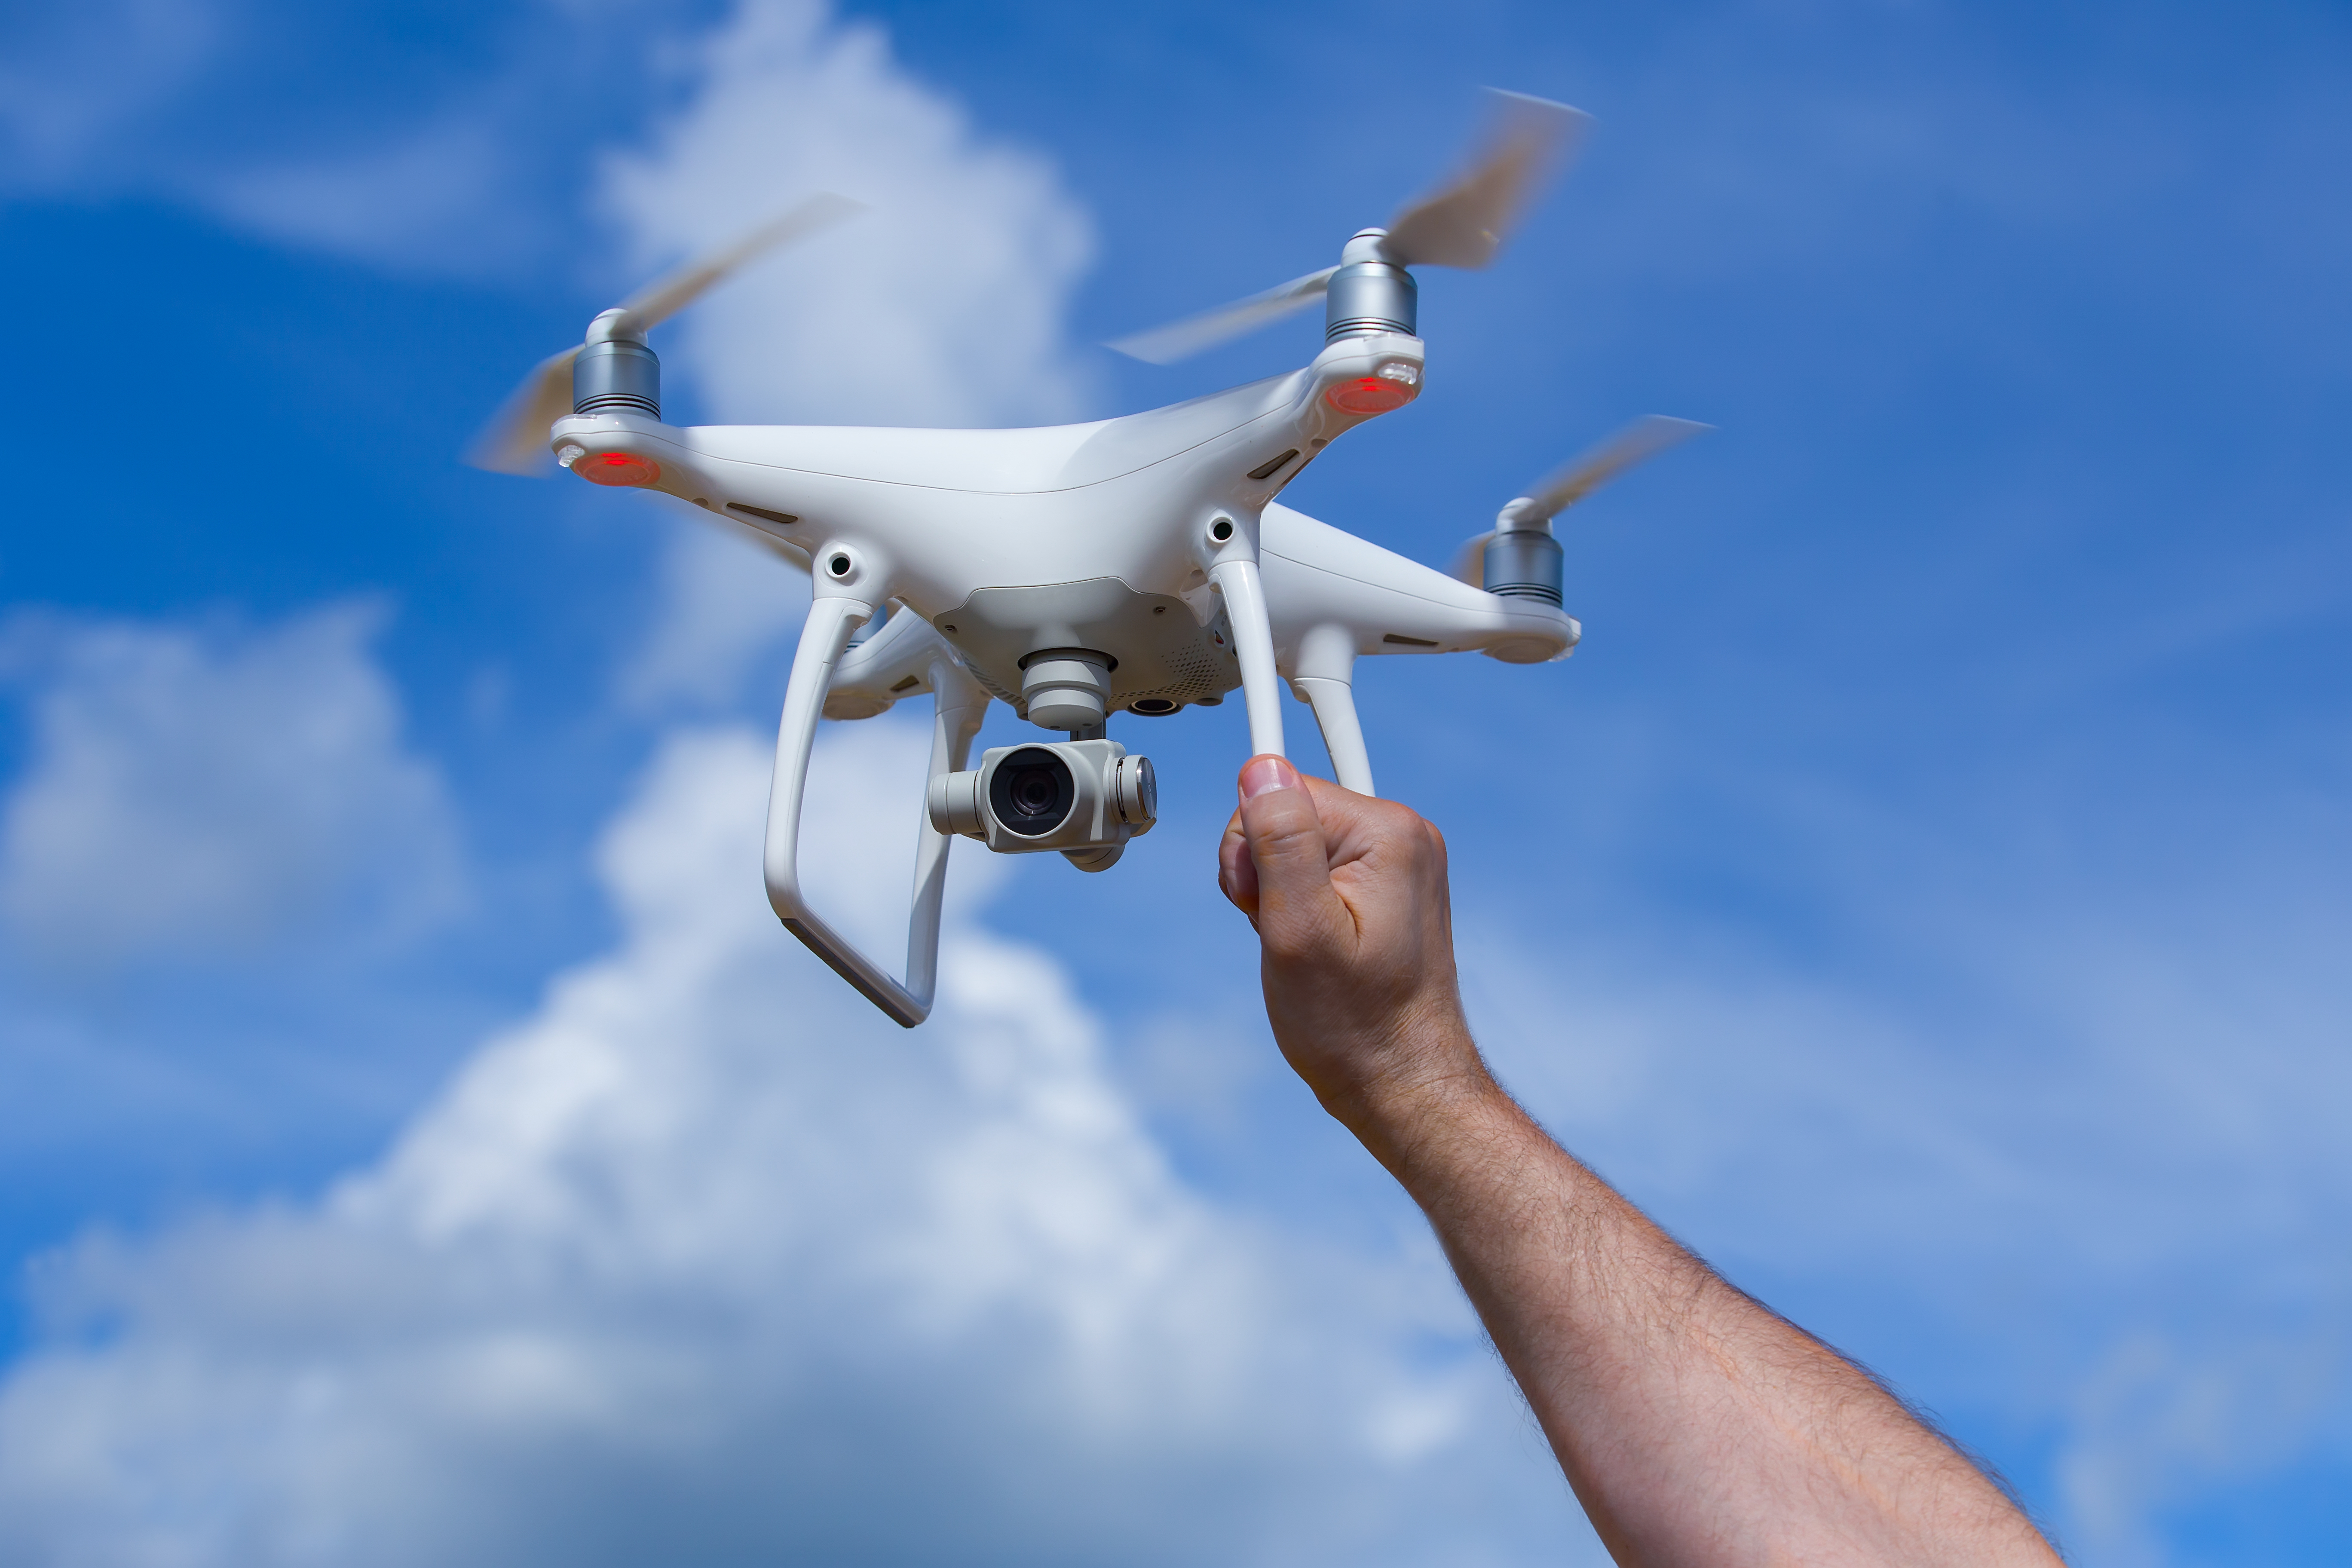 Practice your drone skills in a safe setting before you try anything fancy.